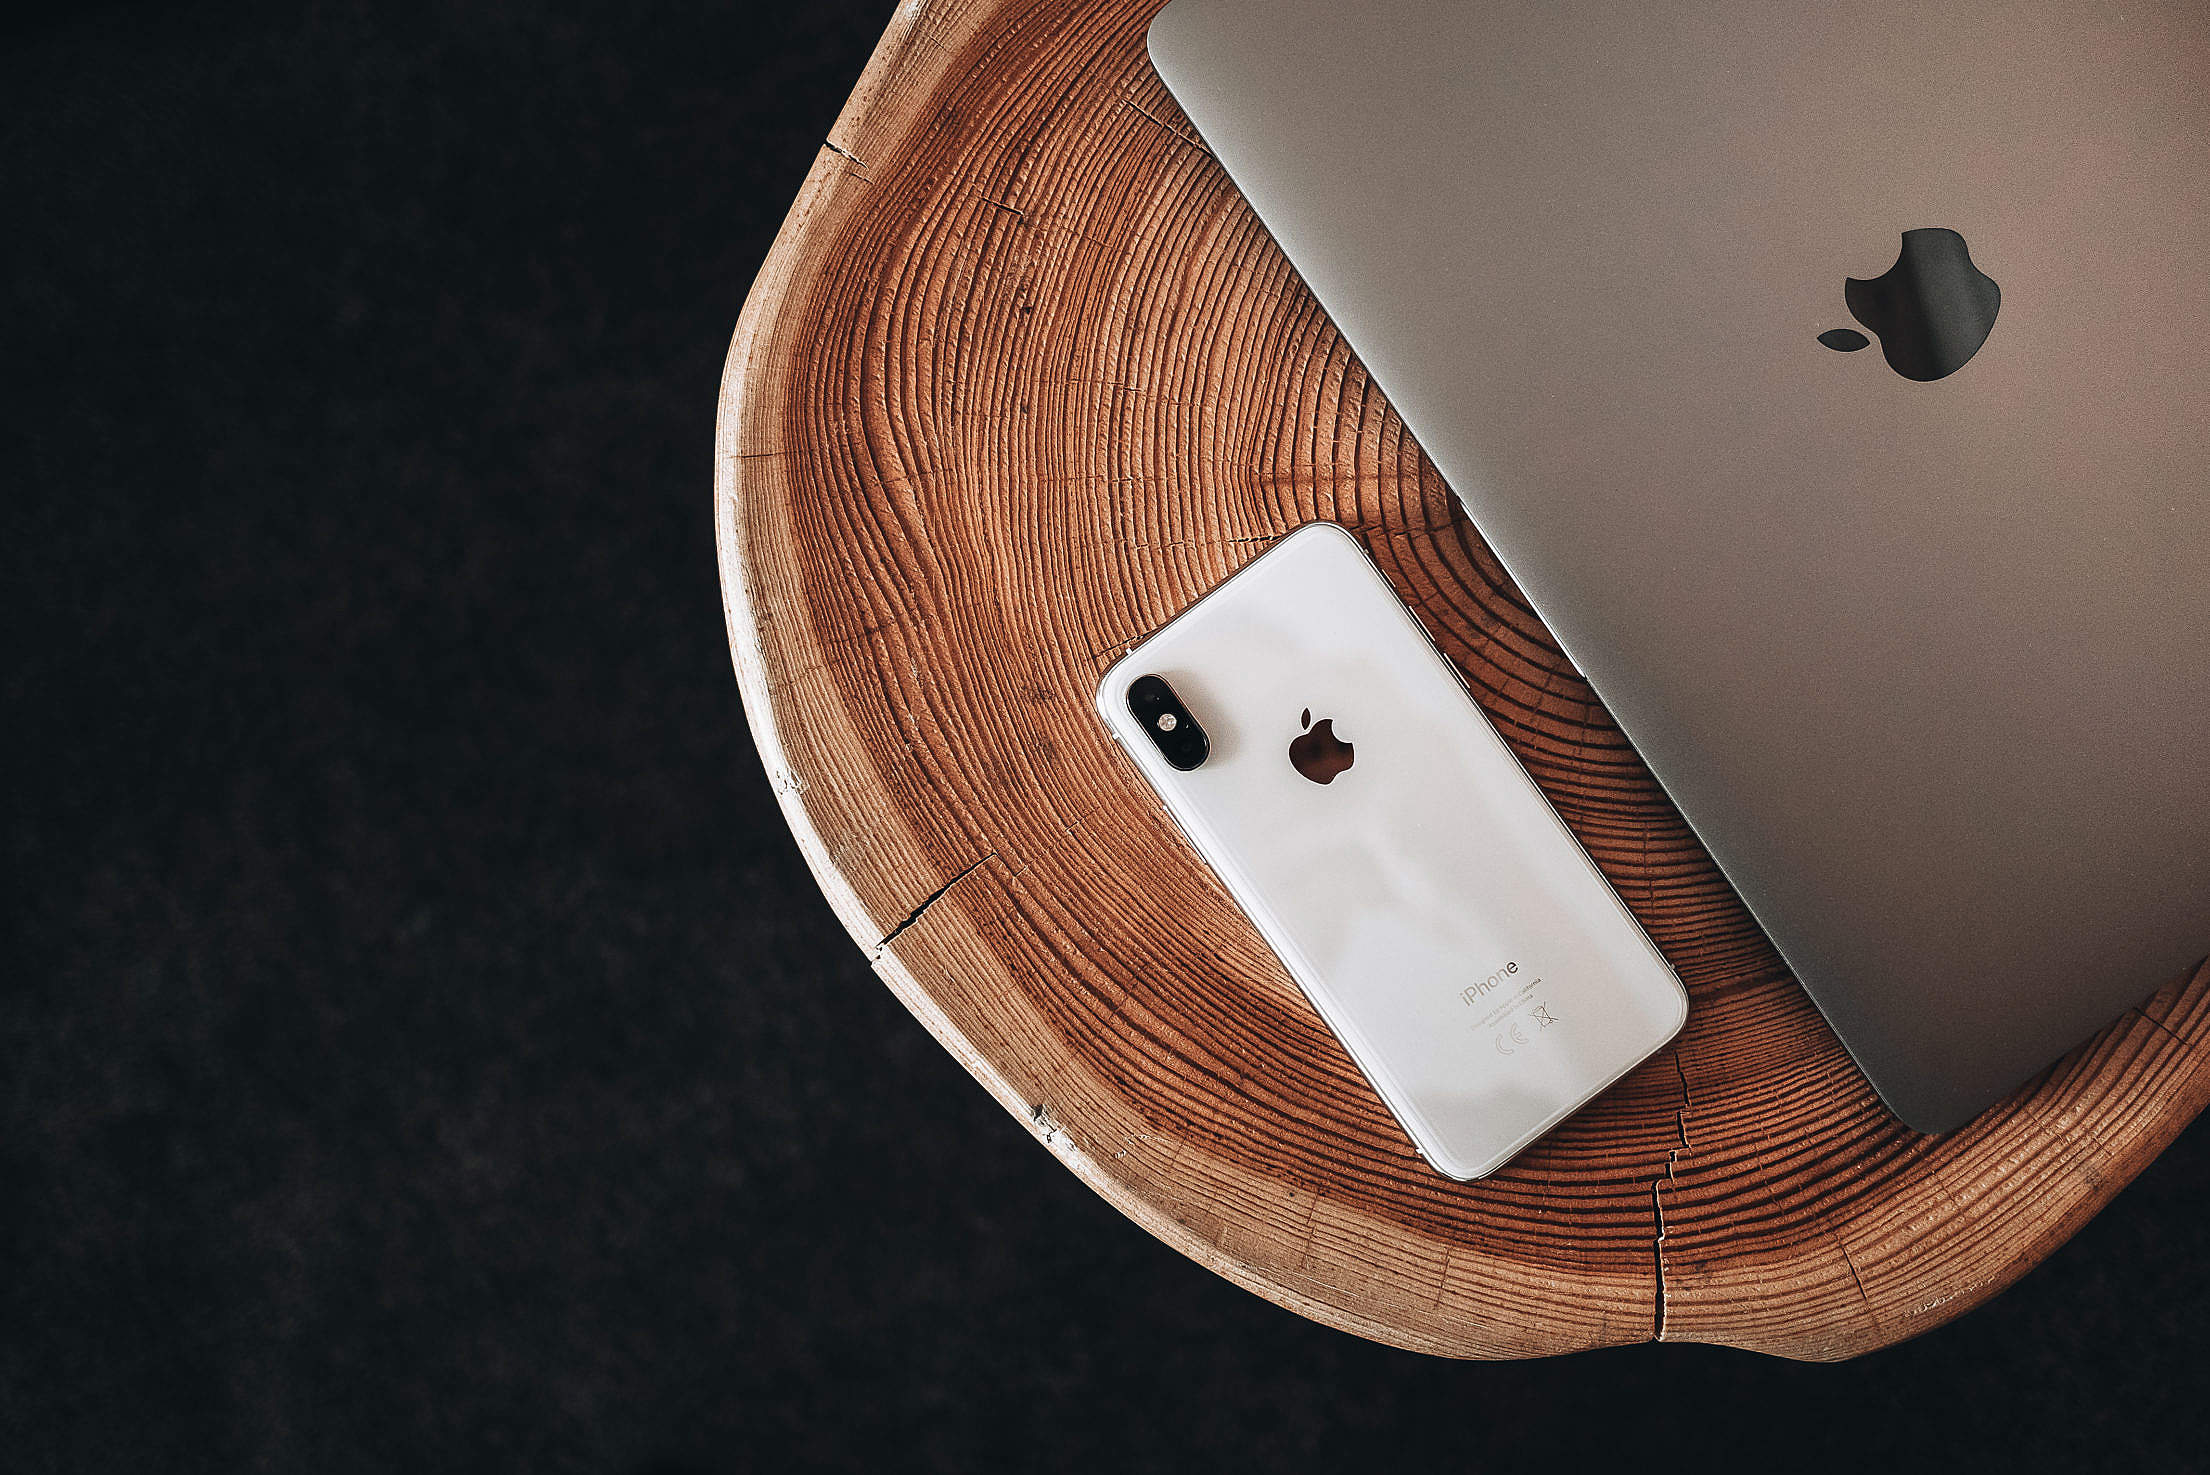 Modern & Sleek Apple Products Free Stock Photo